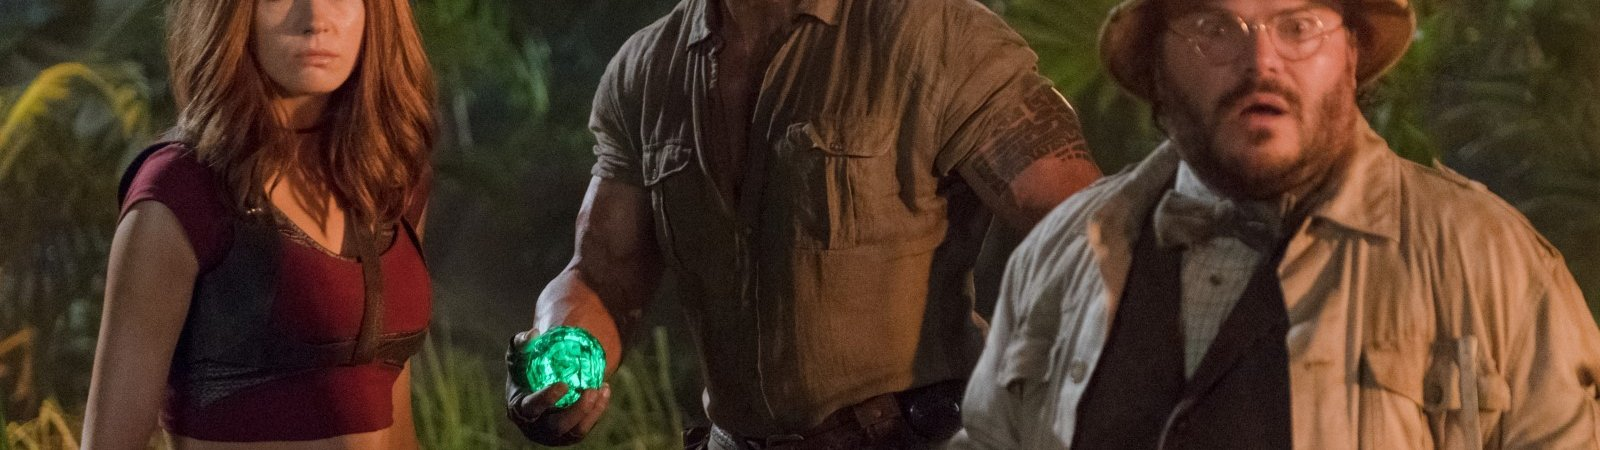 Photo du film : Jumanji : bienvenue dans la jungle